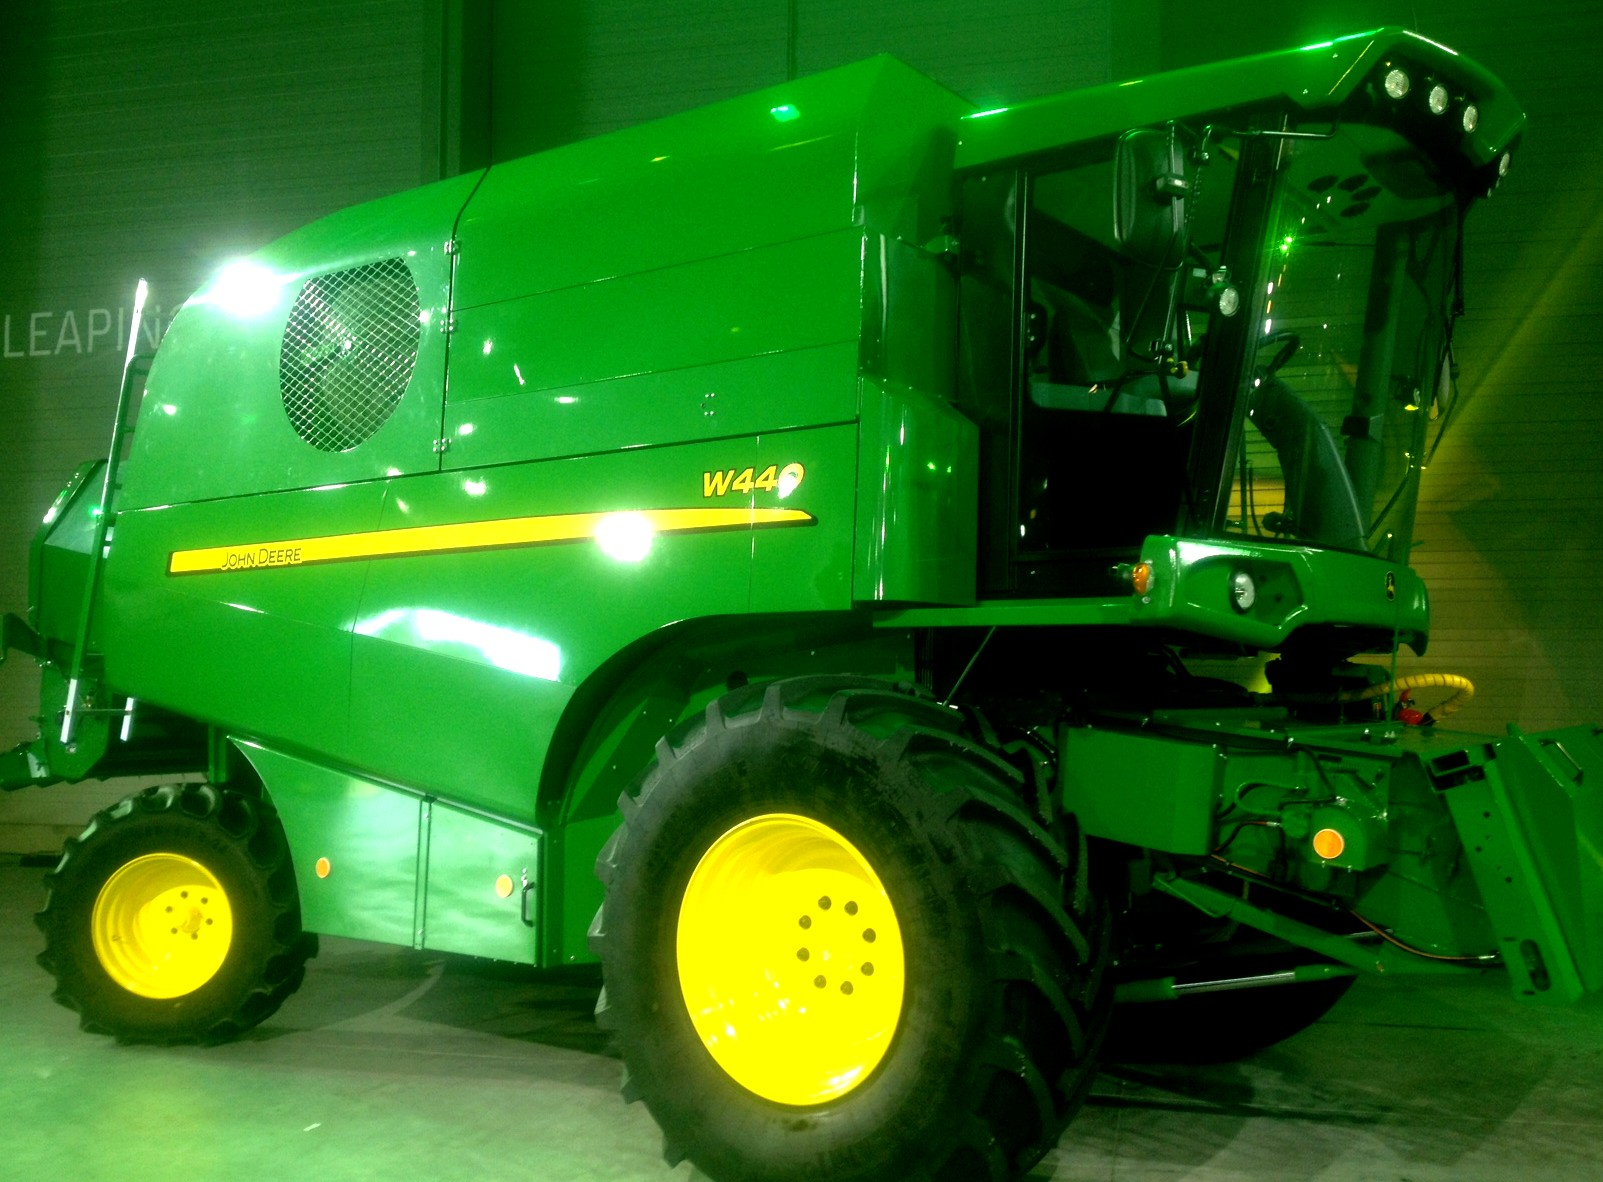 La nouvelle moissonneuse-batteuse  John Deere W440 « made by Sampo » !